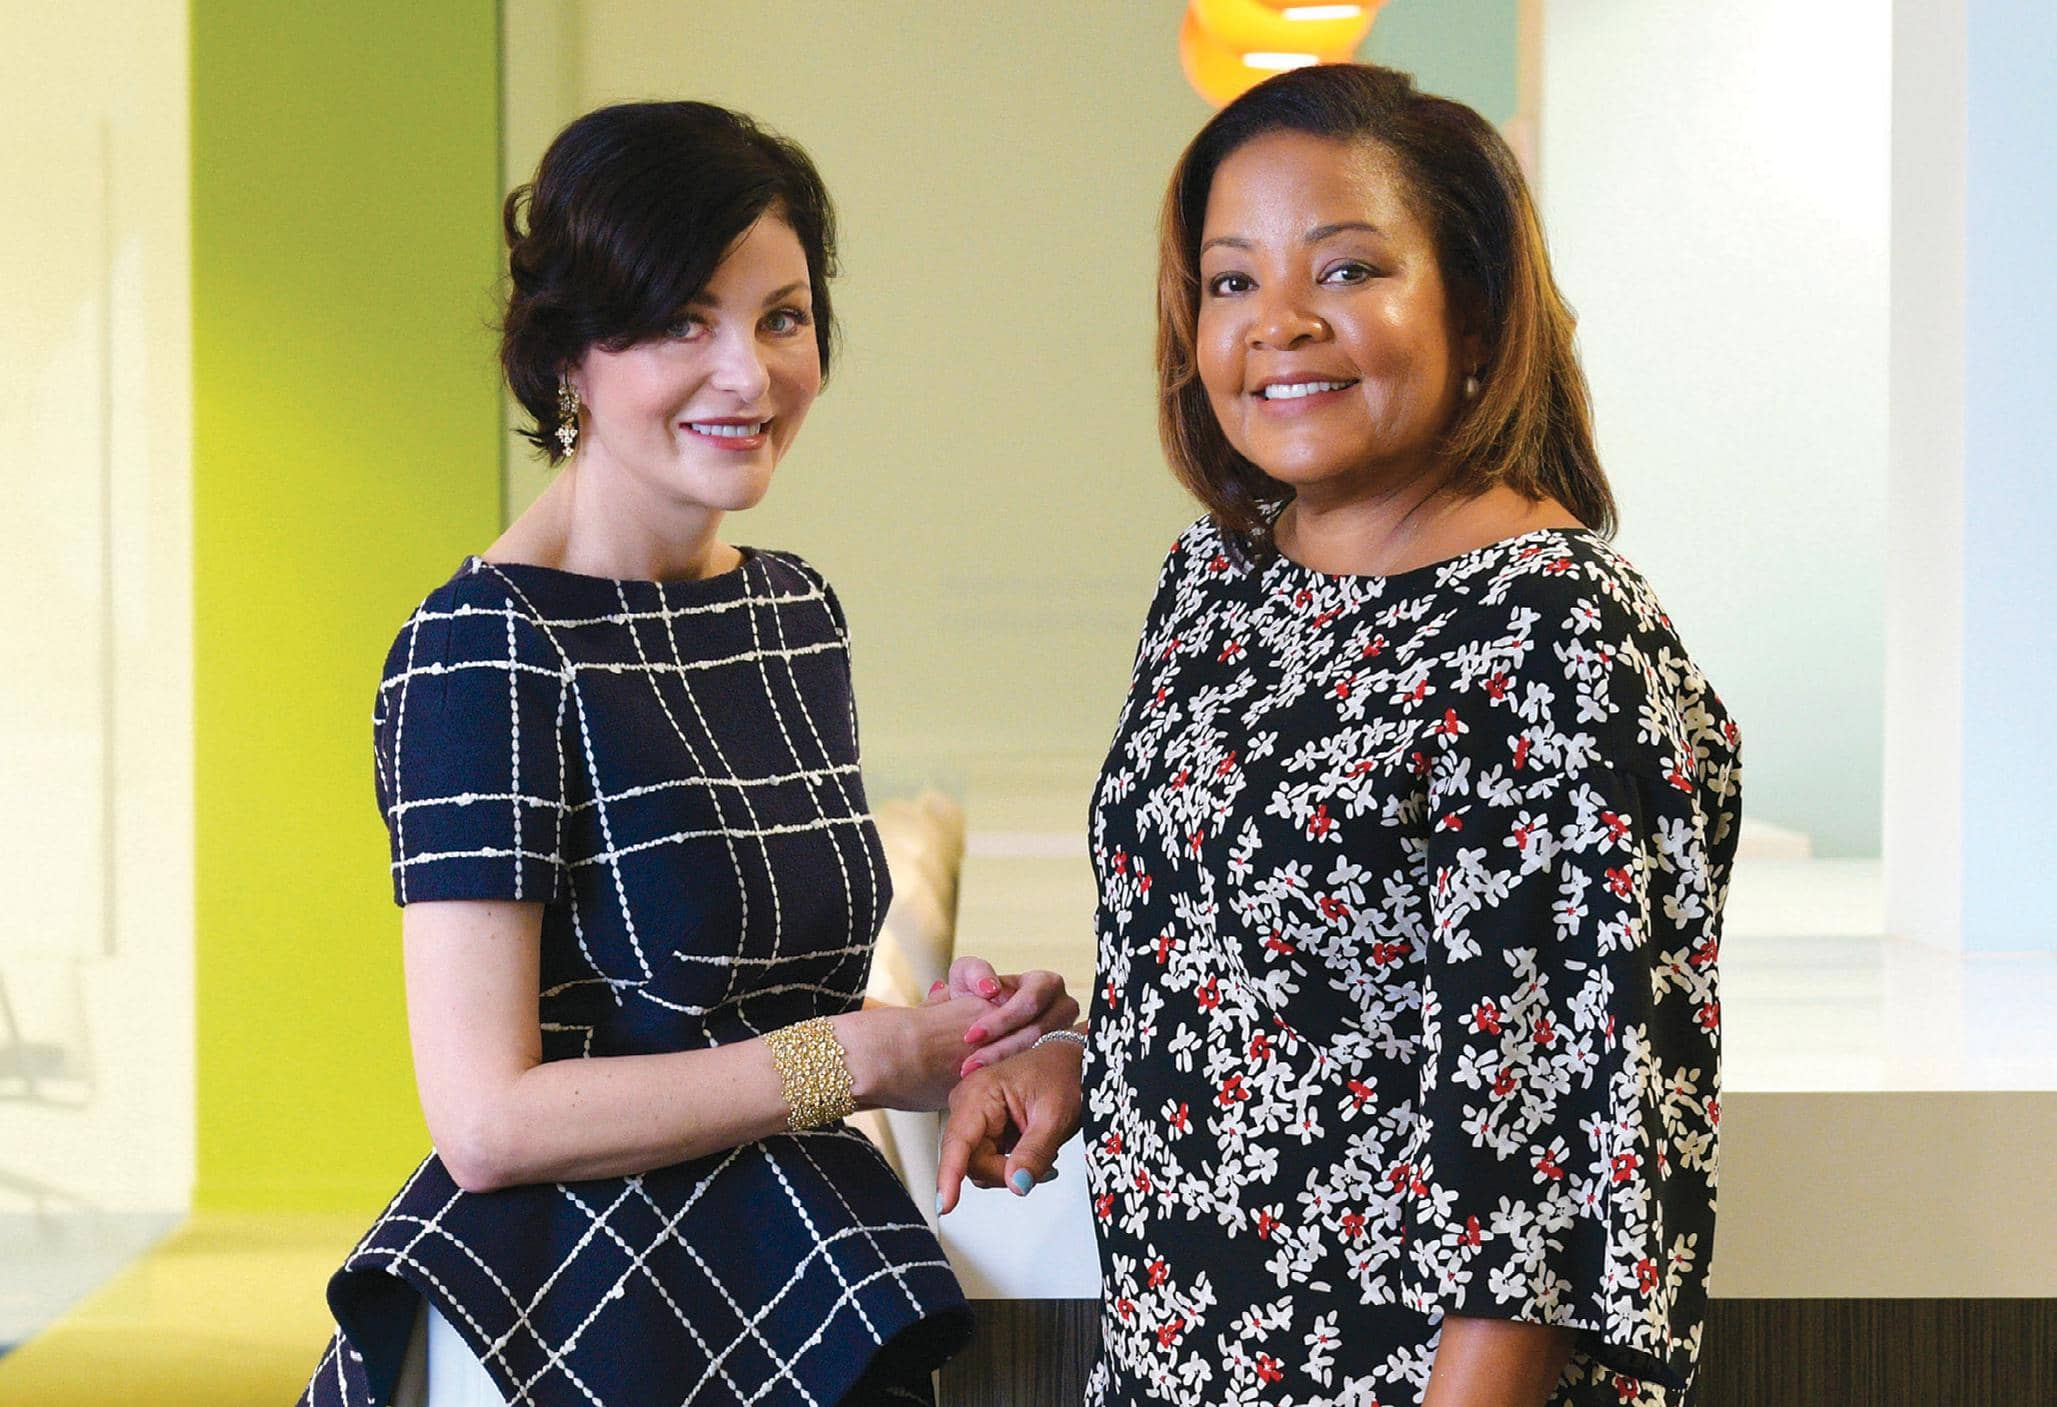 A Celebration Of Women In The Workplace